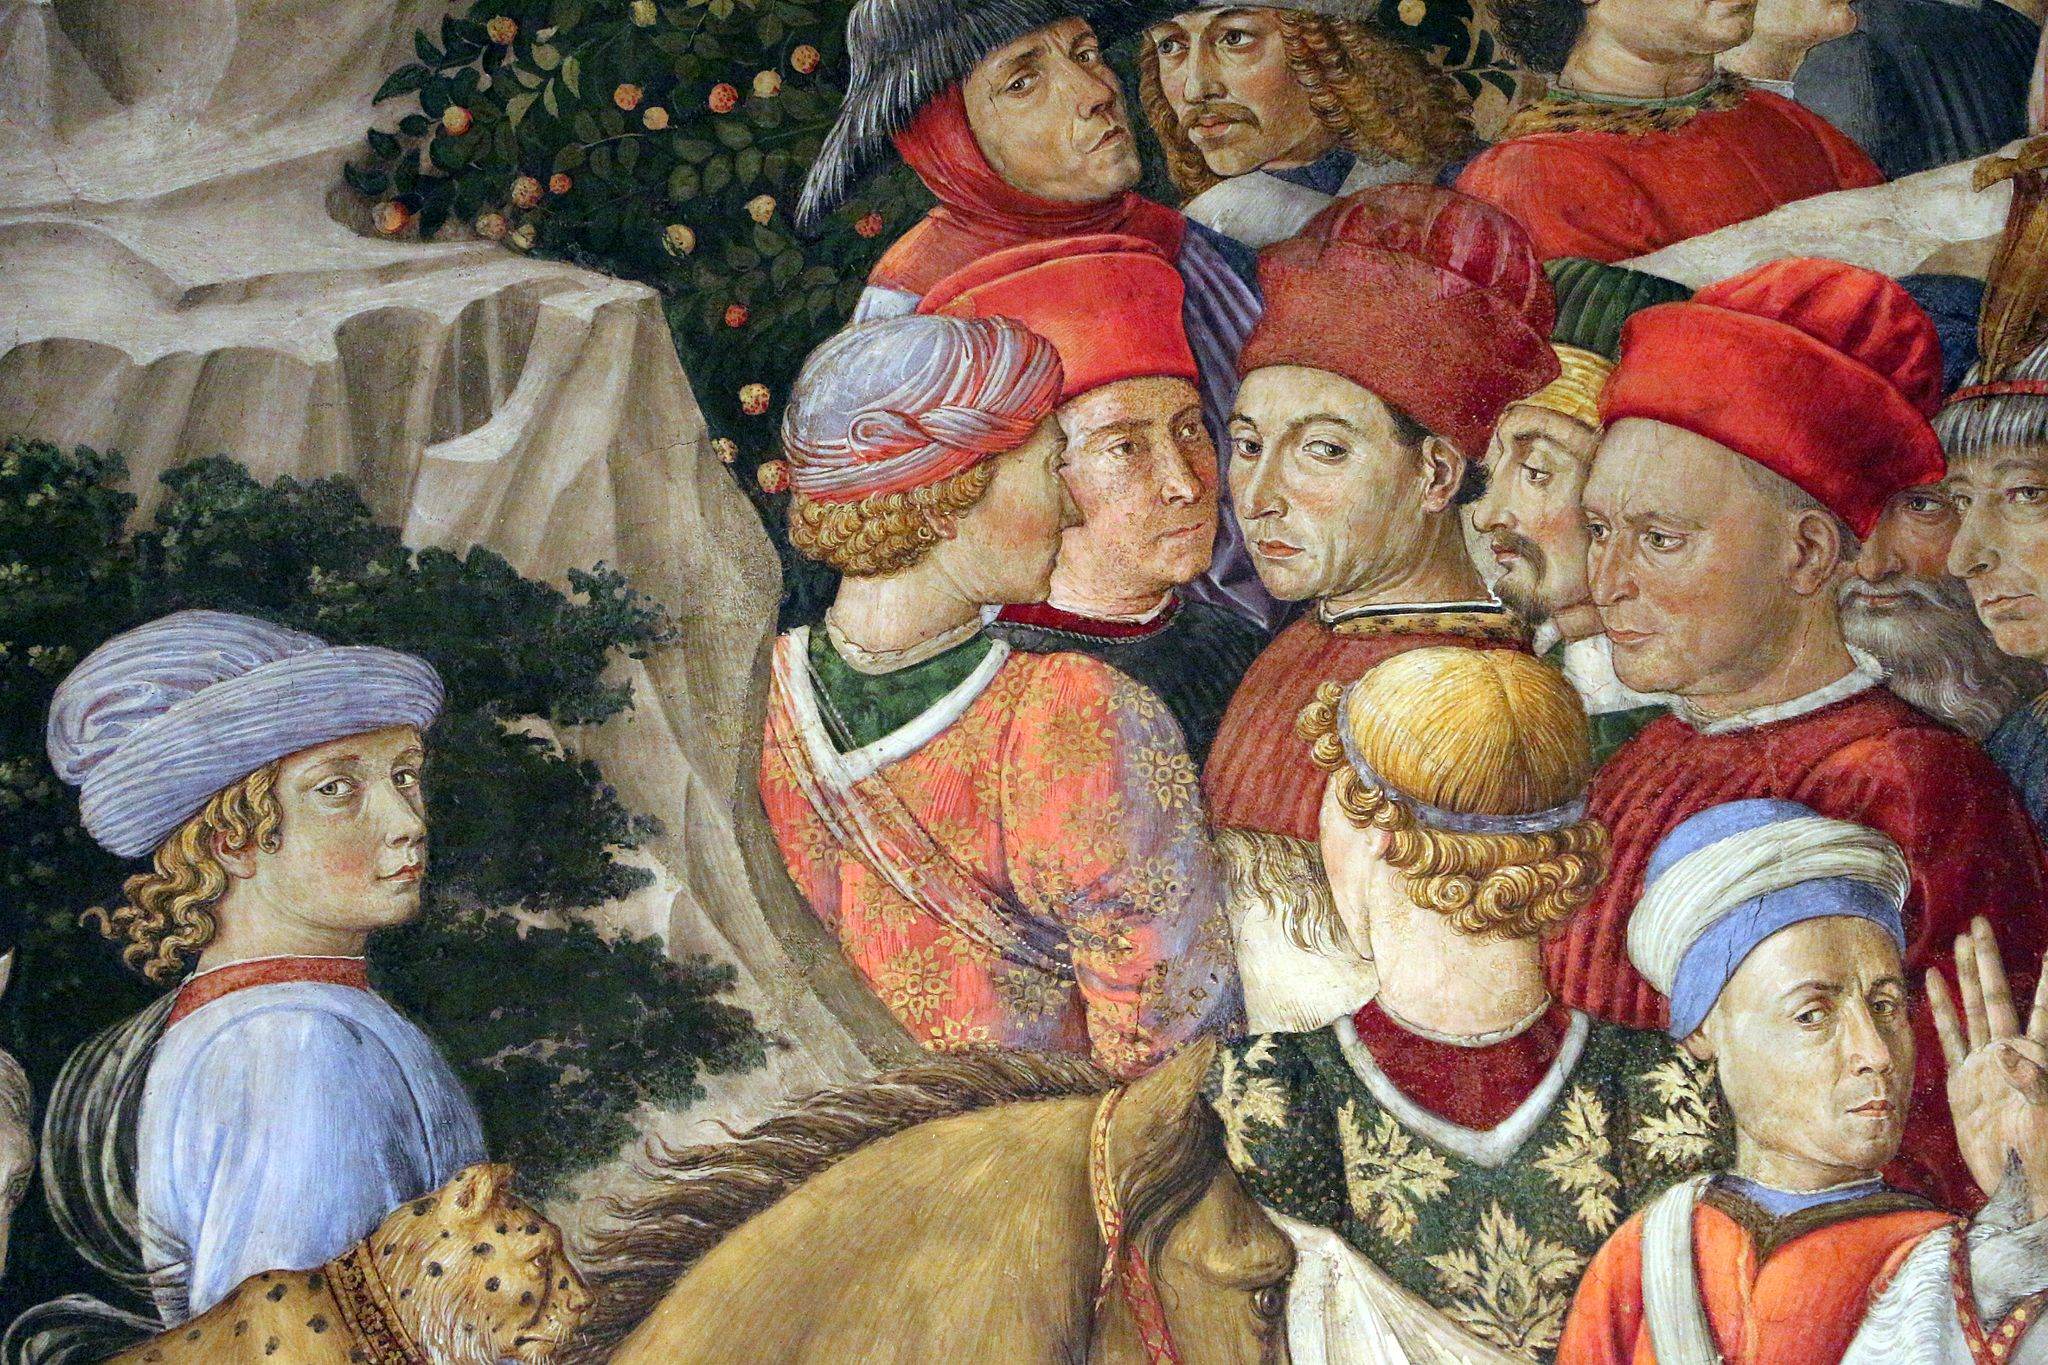 Benozzo Gozzoli, Procession of the Old King (west wall), 1459-60, fresco, Chapel, Palazzo Medici-Riccardi, Florence